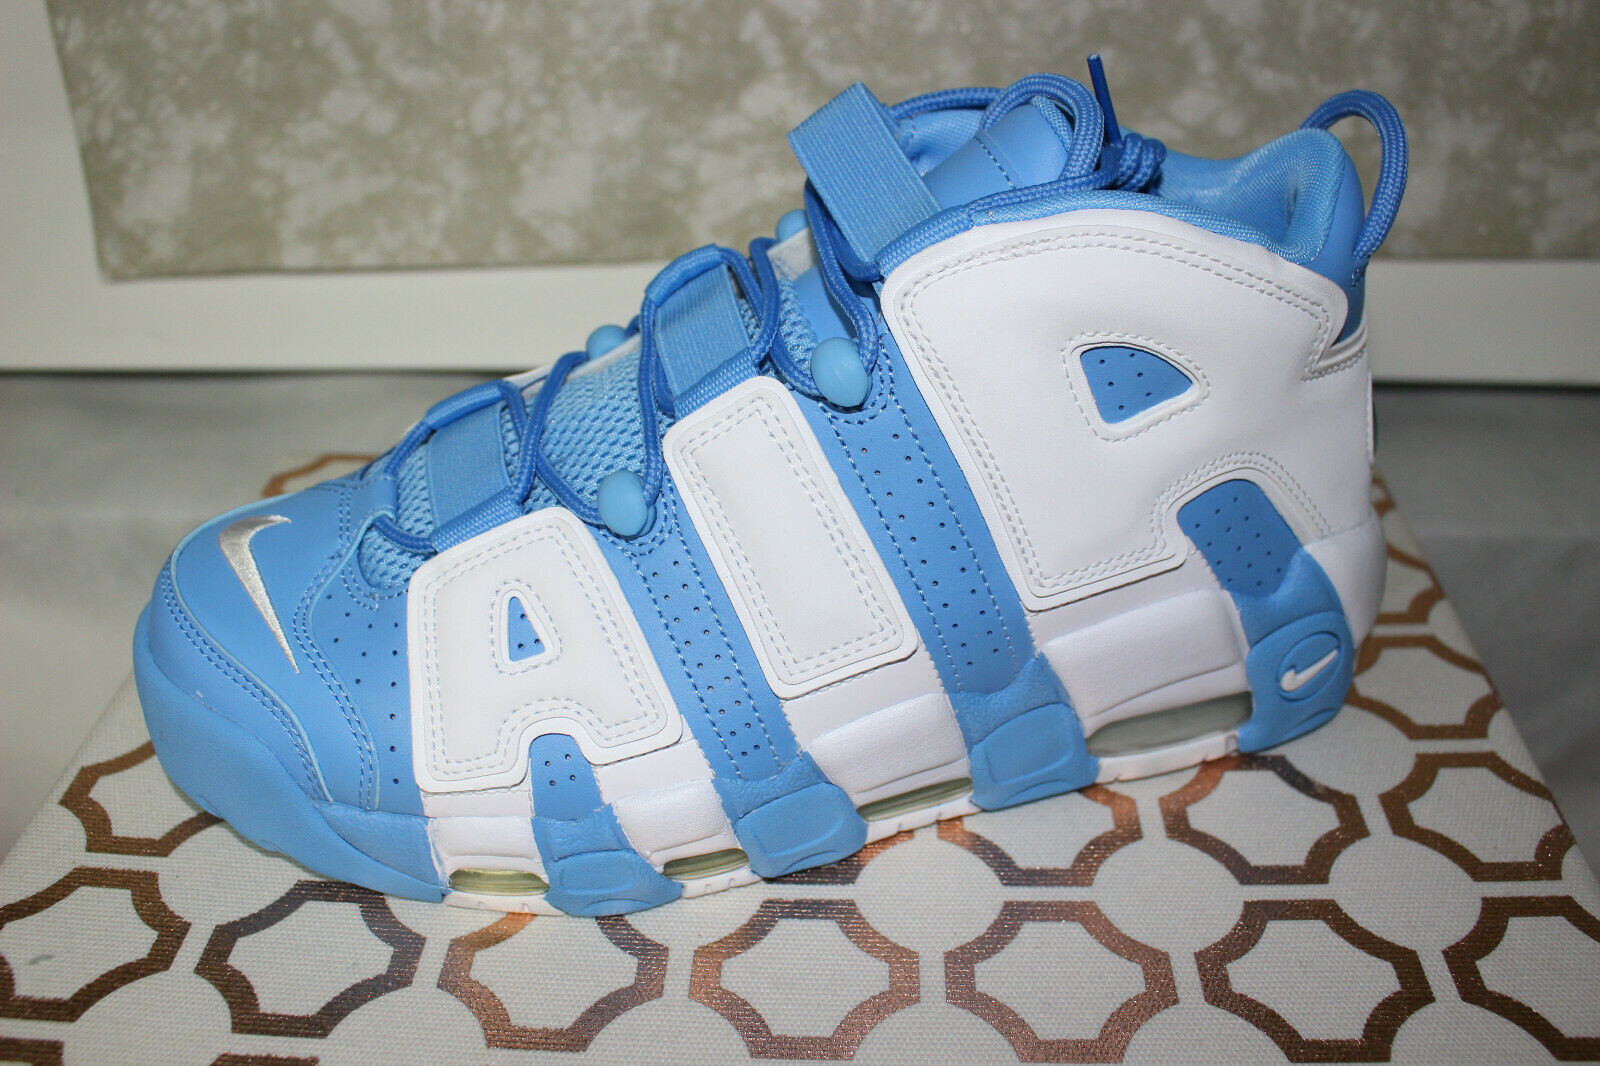 Nike Air Air Air More Uptempo '96 921948-401 University bluee, Brand New Size 11.5 03f9bd